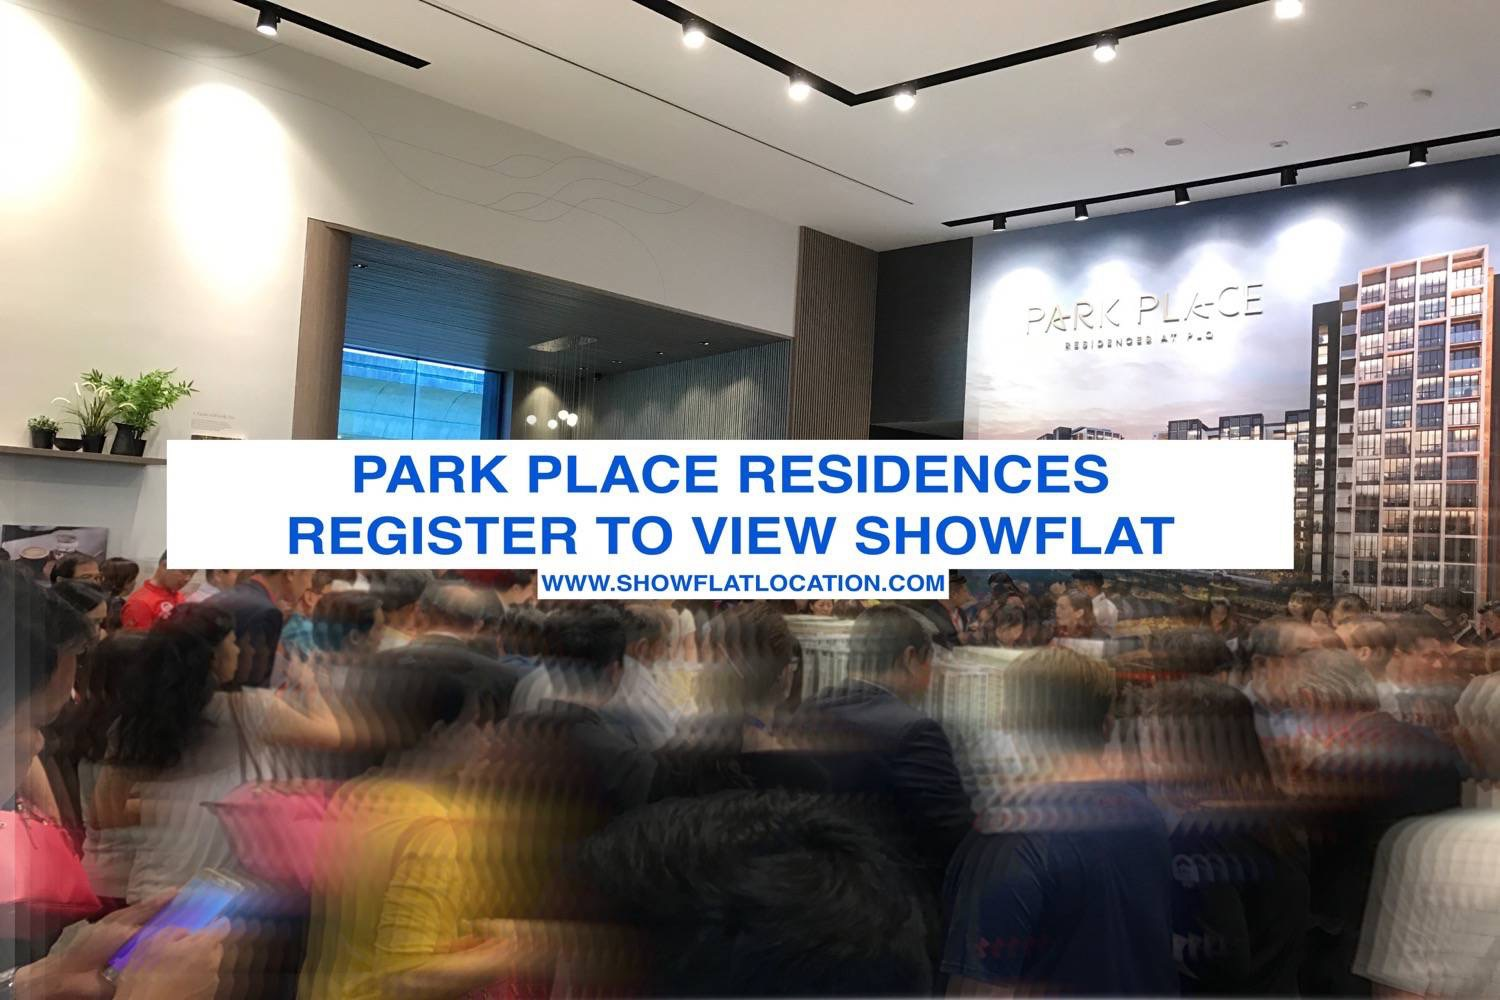 Park Place Residences Showflat